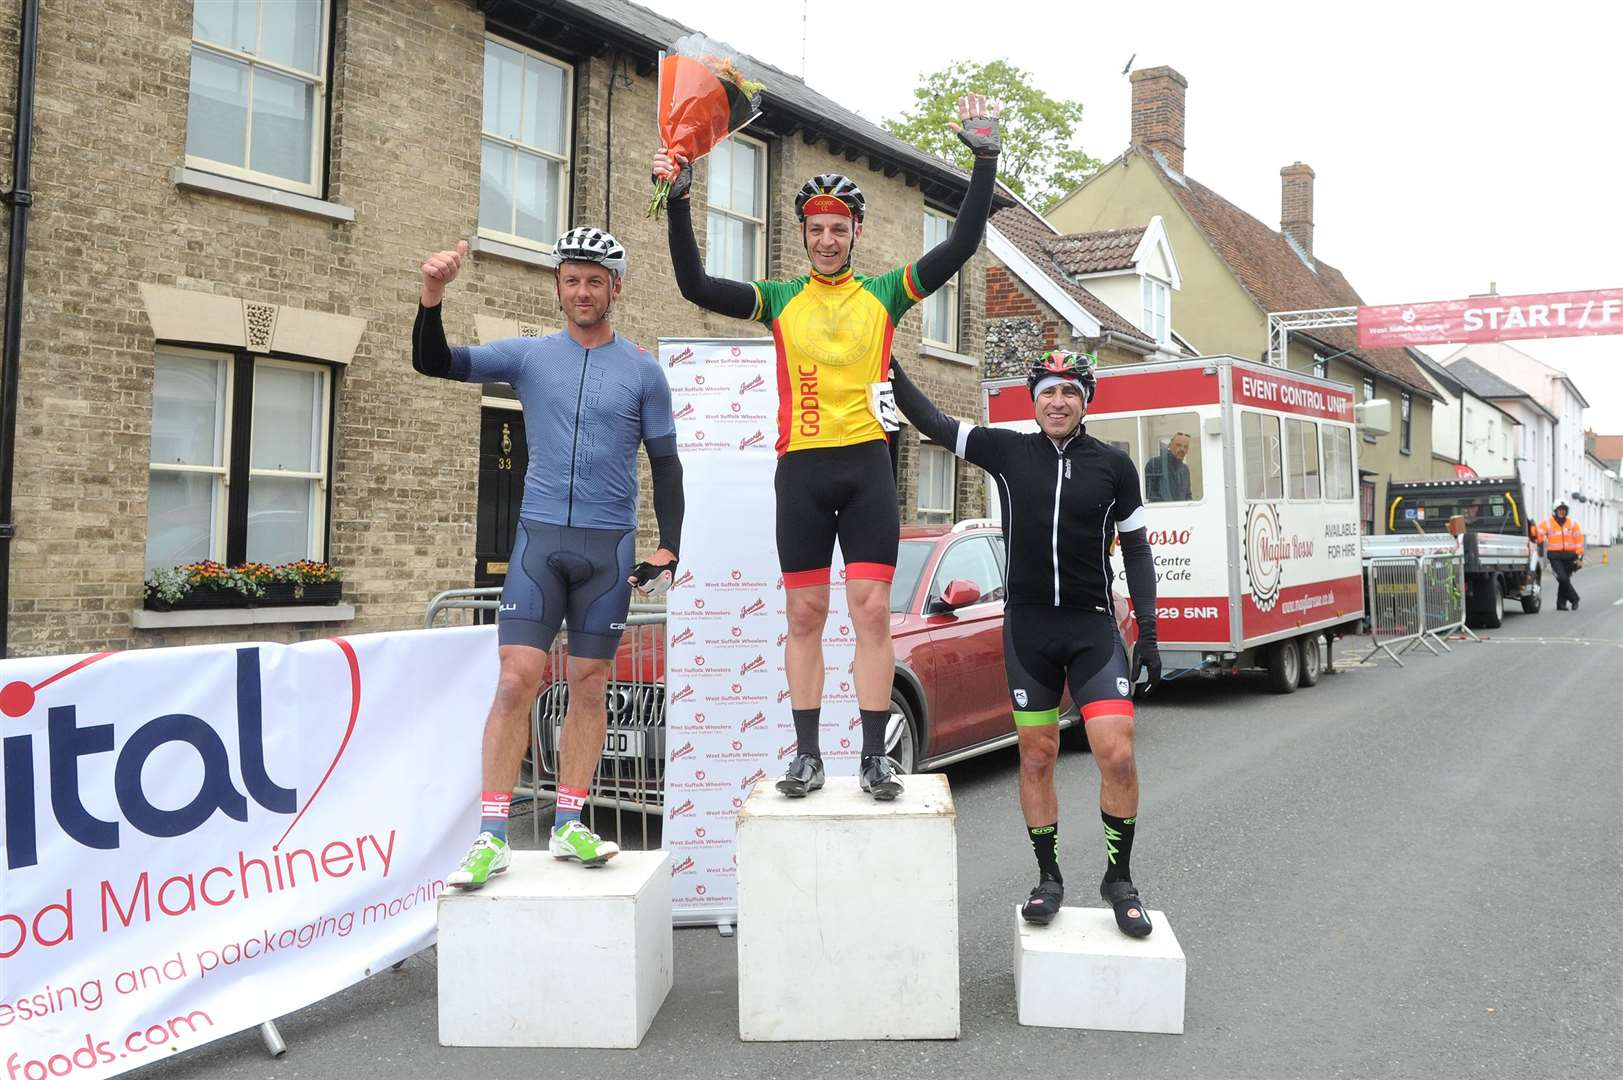 This year's Ixworth Cycle Races was held on Bank Holiday Monday Pictures: Mecha Morton